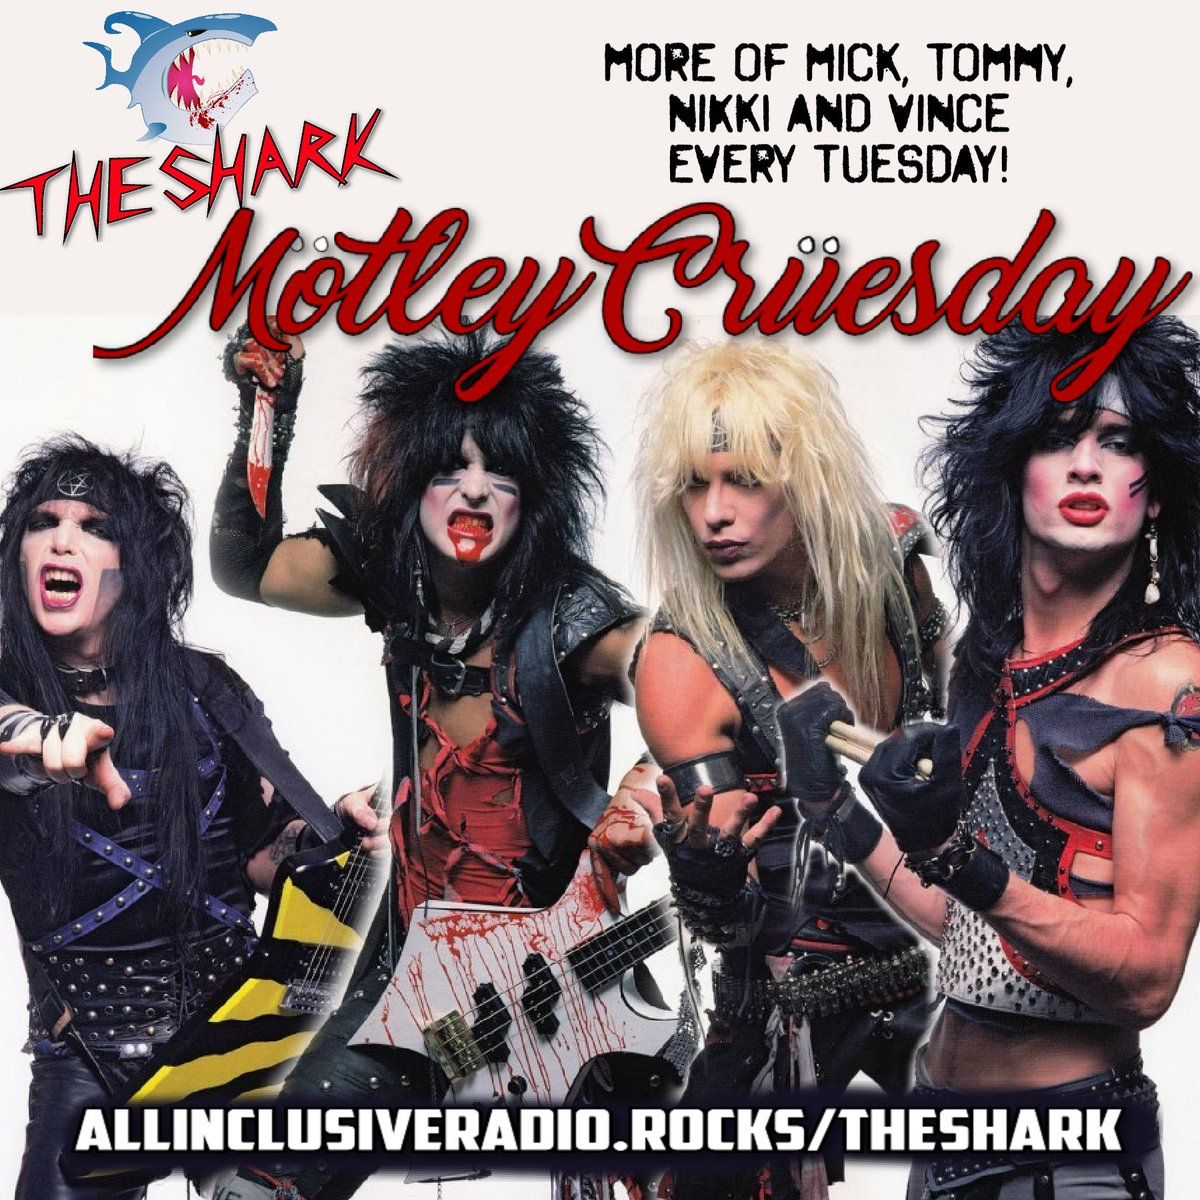 Spread the word about our #HairMetal and #MelodicRock radio station, THE SHARK.  And tune in on Tuesday's for Motley Cruesday where we play more #MotleyCrue all day... the big jams and all the others!  Tune in to THE SHARK.  We play the music satellite radio won't play. https://t.co/3Wpe6ObN7H